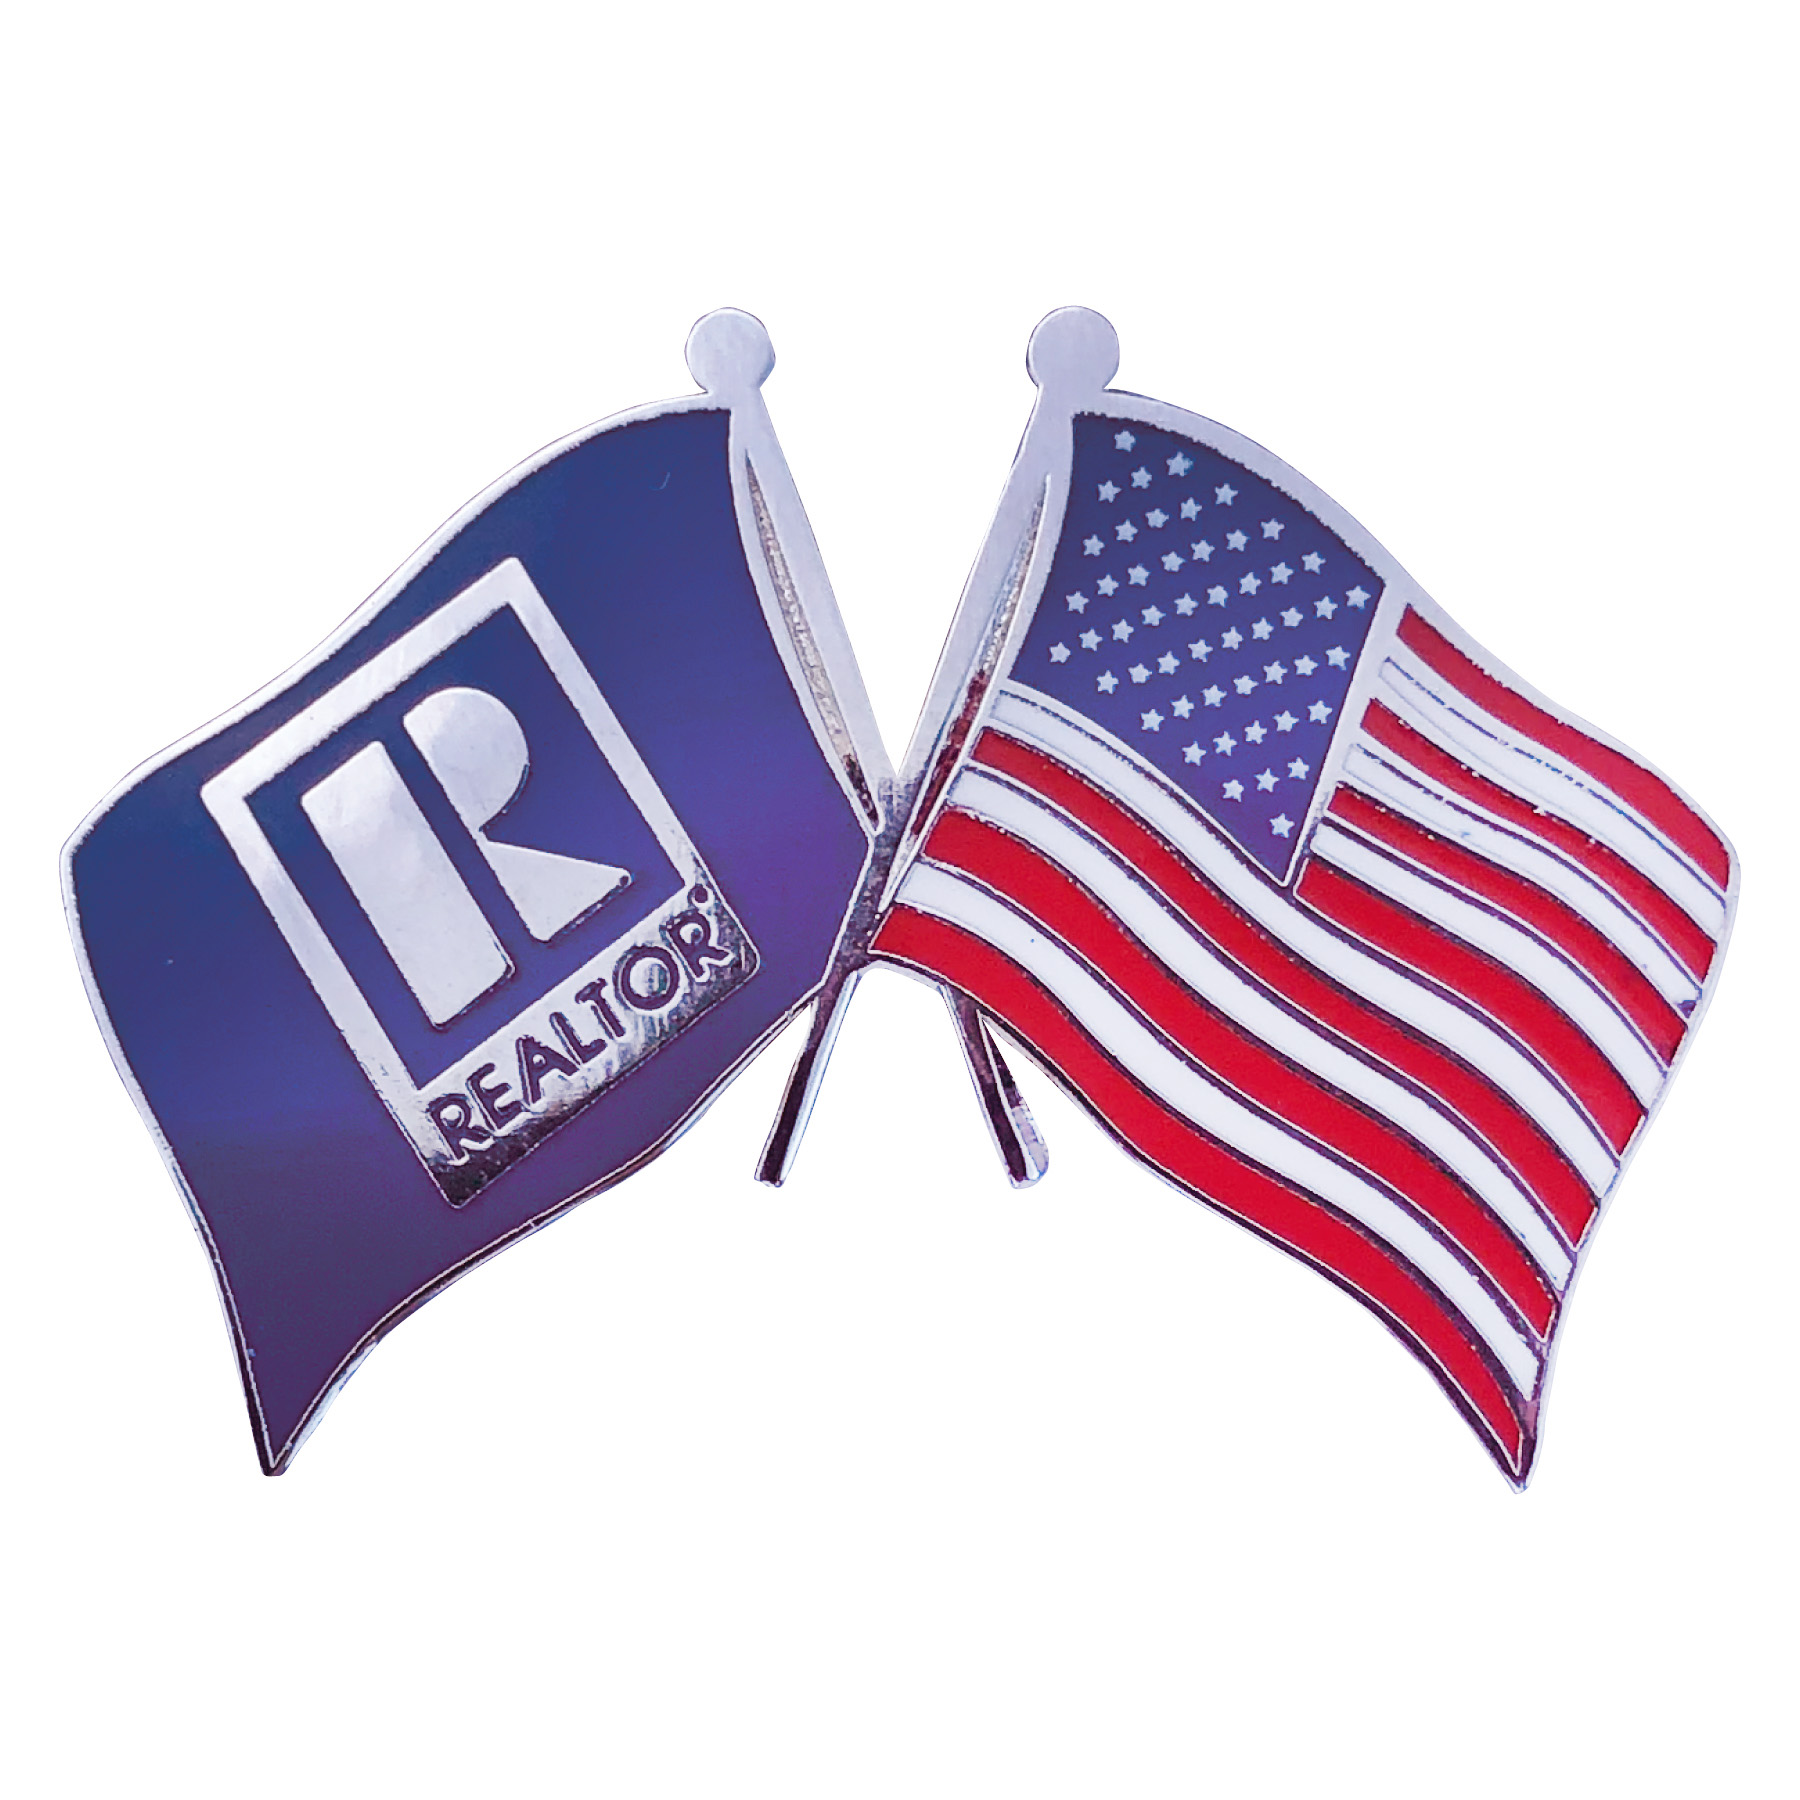 Flying Flags Pin Flags,Poles,Staffs,USA,Americas,National